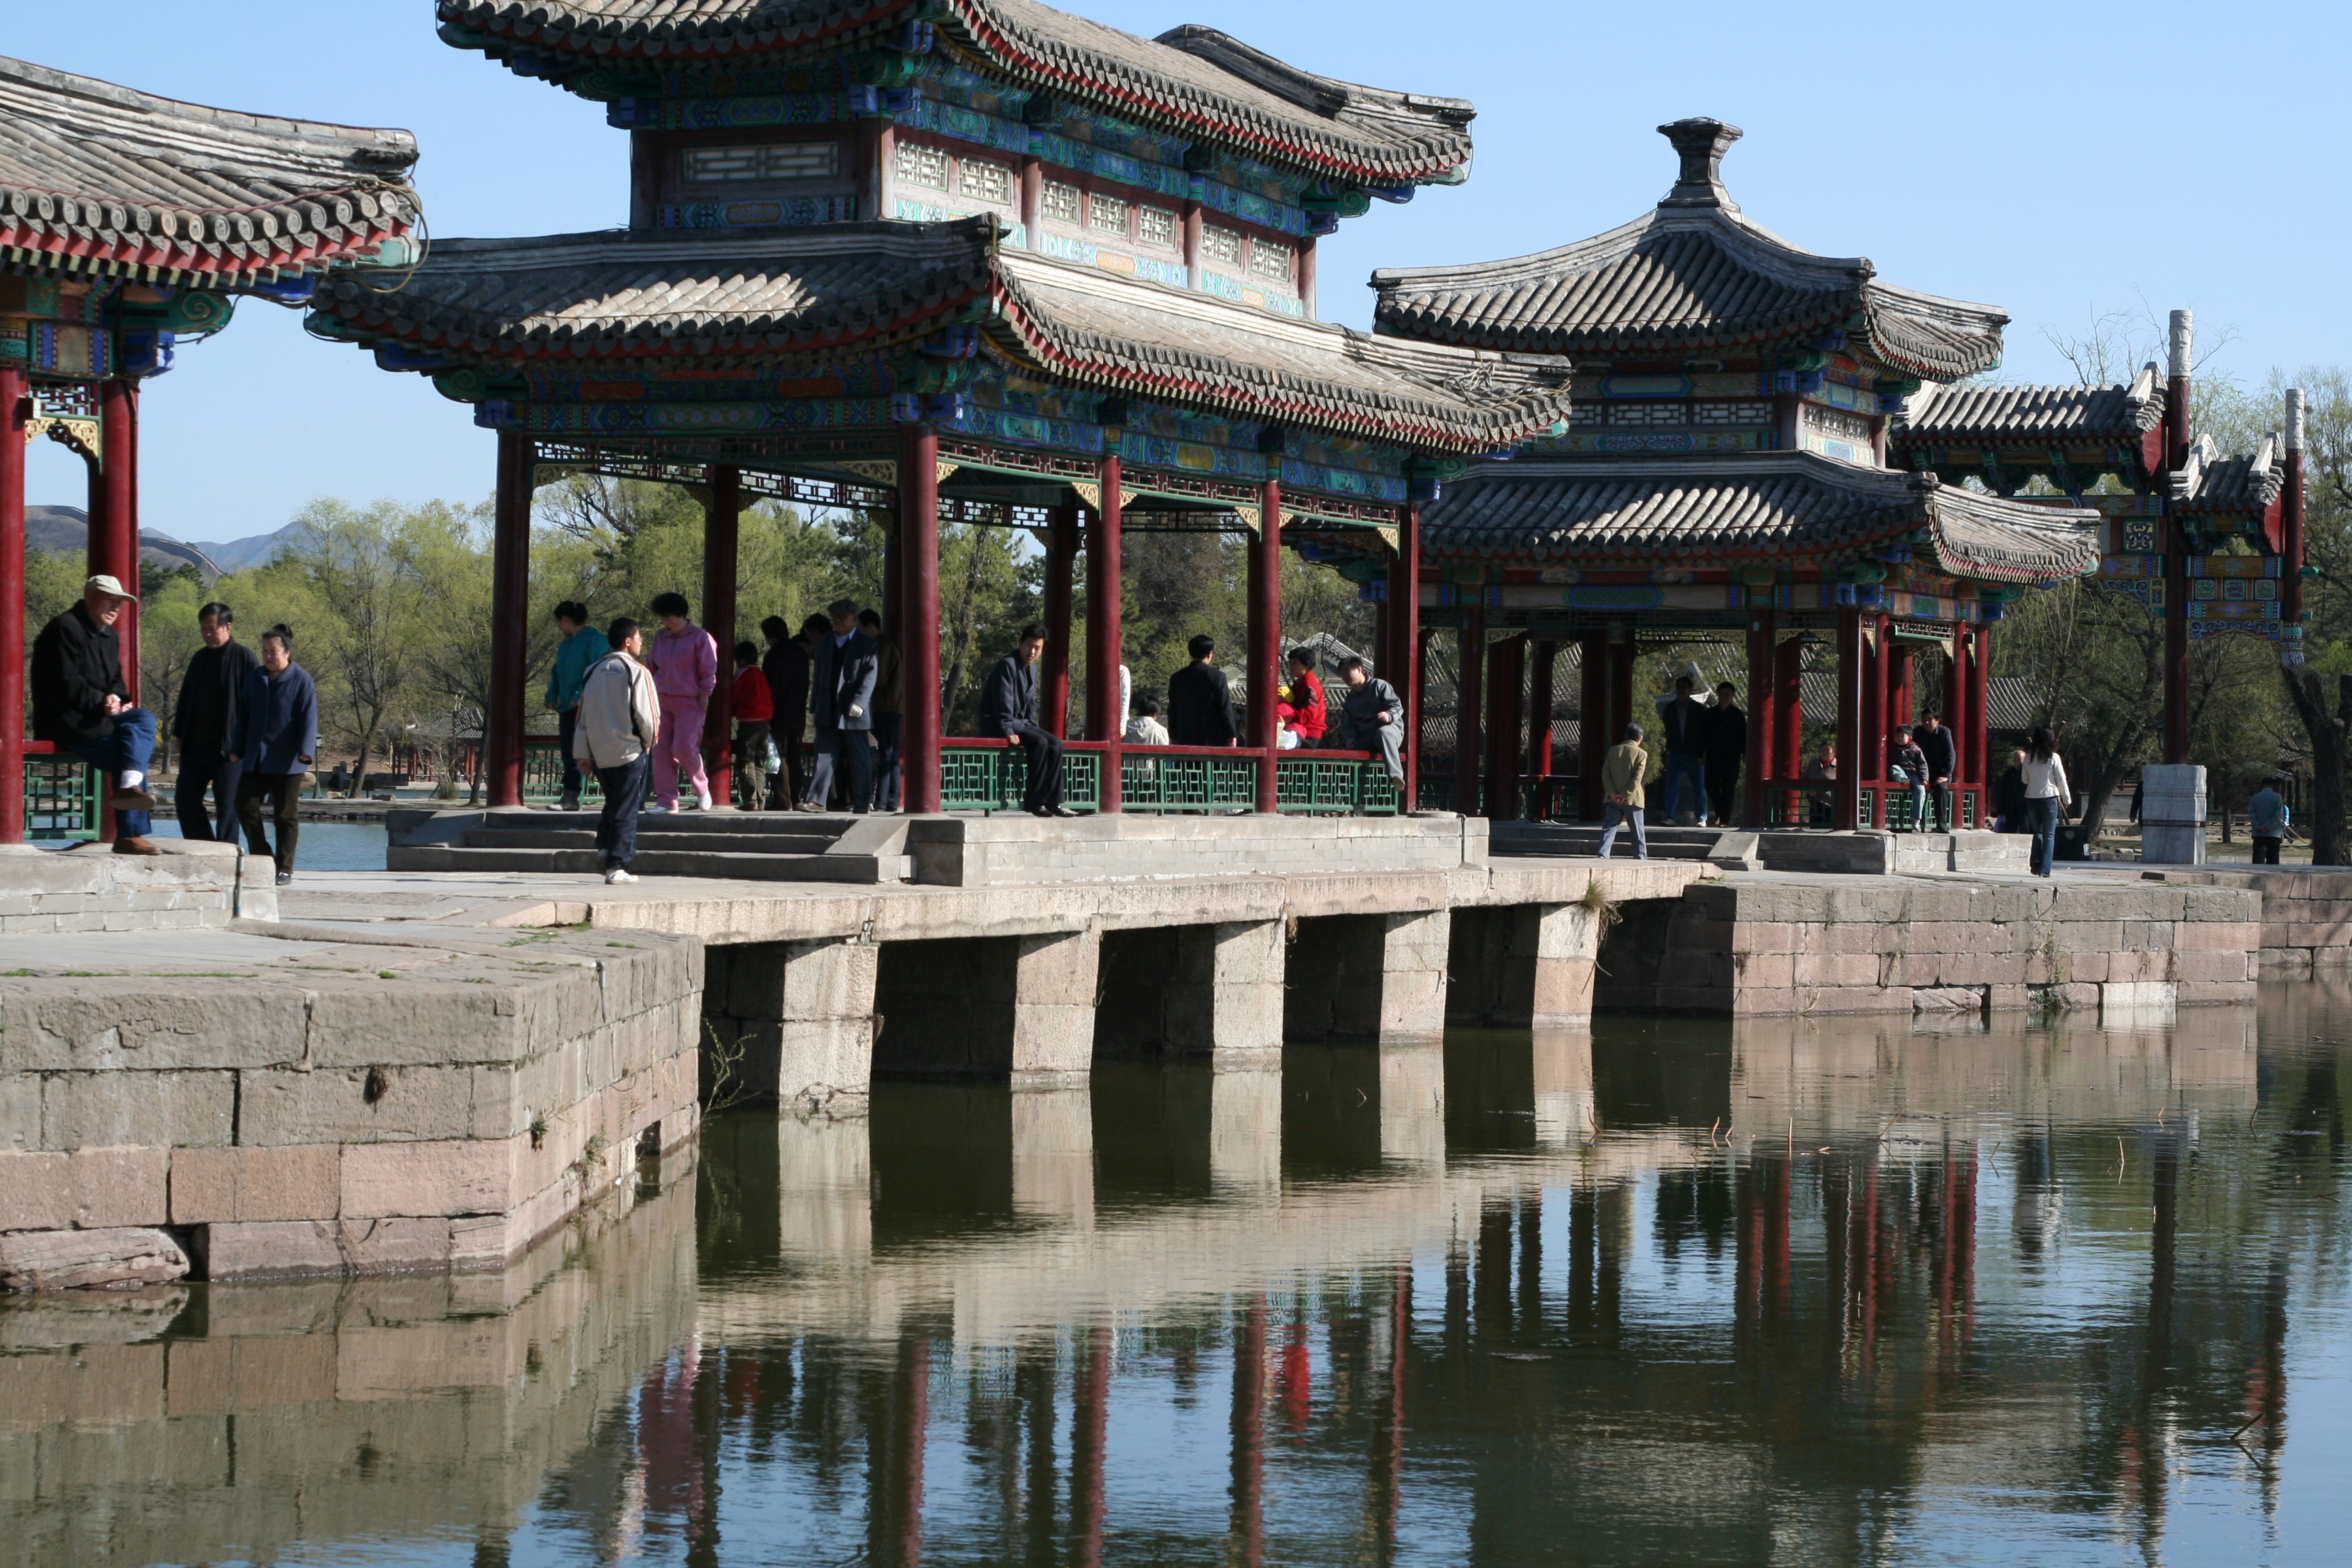 Chengde - Imperial Summer Mountain Resort for Escaping the Summer Heat Gardenvisit.com